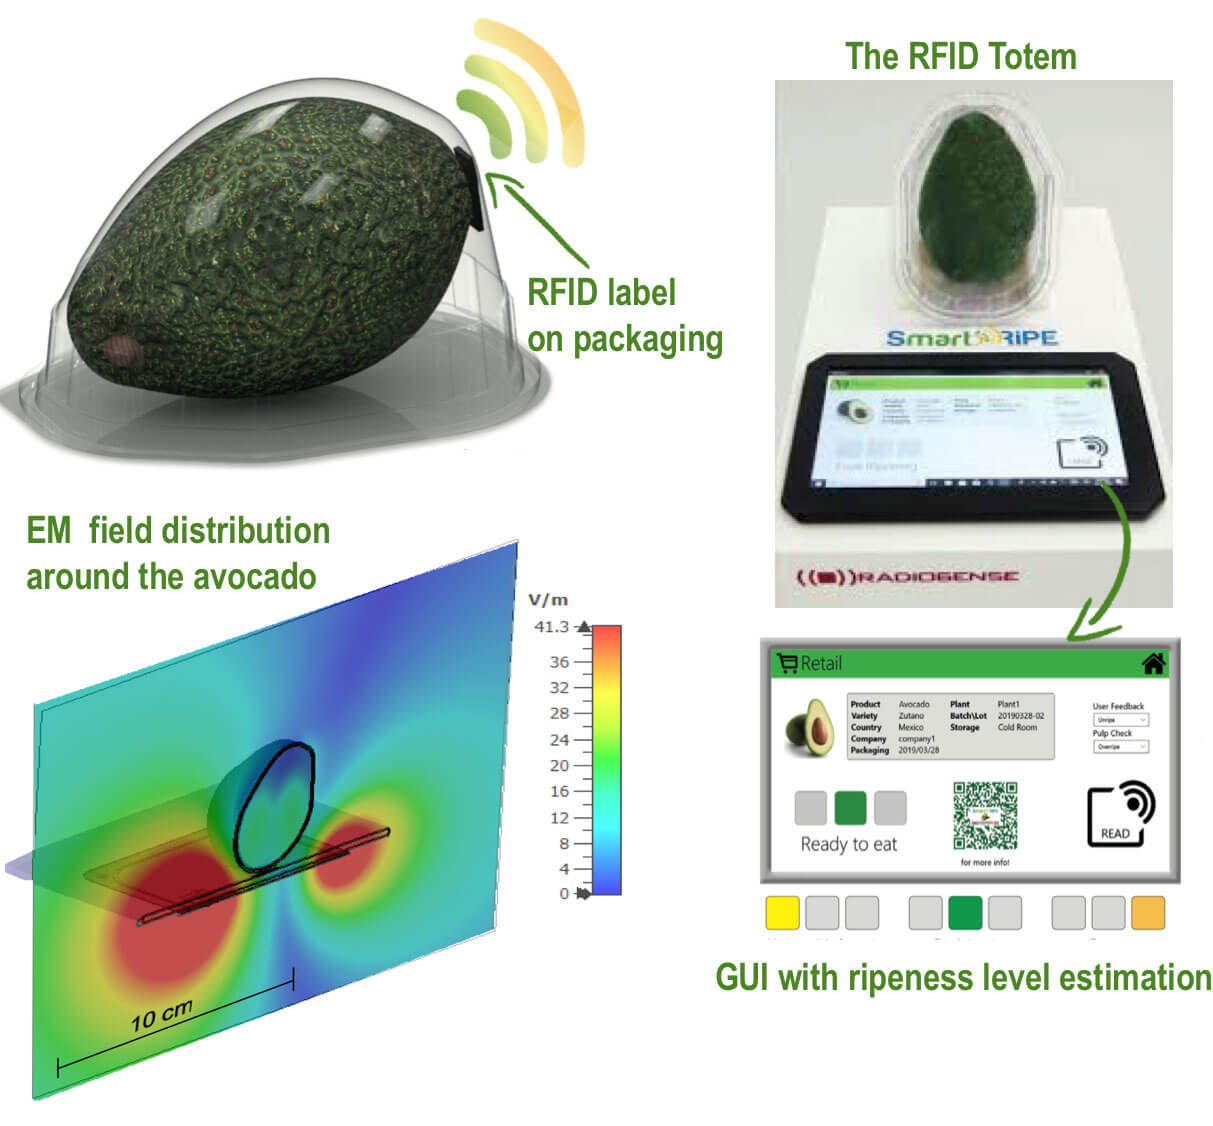 The concept of RFID-totem for fruit ripeness monitoring.